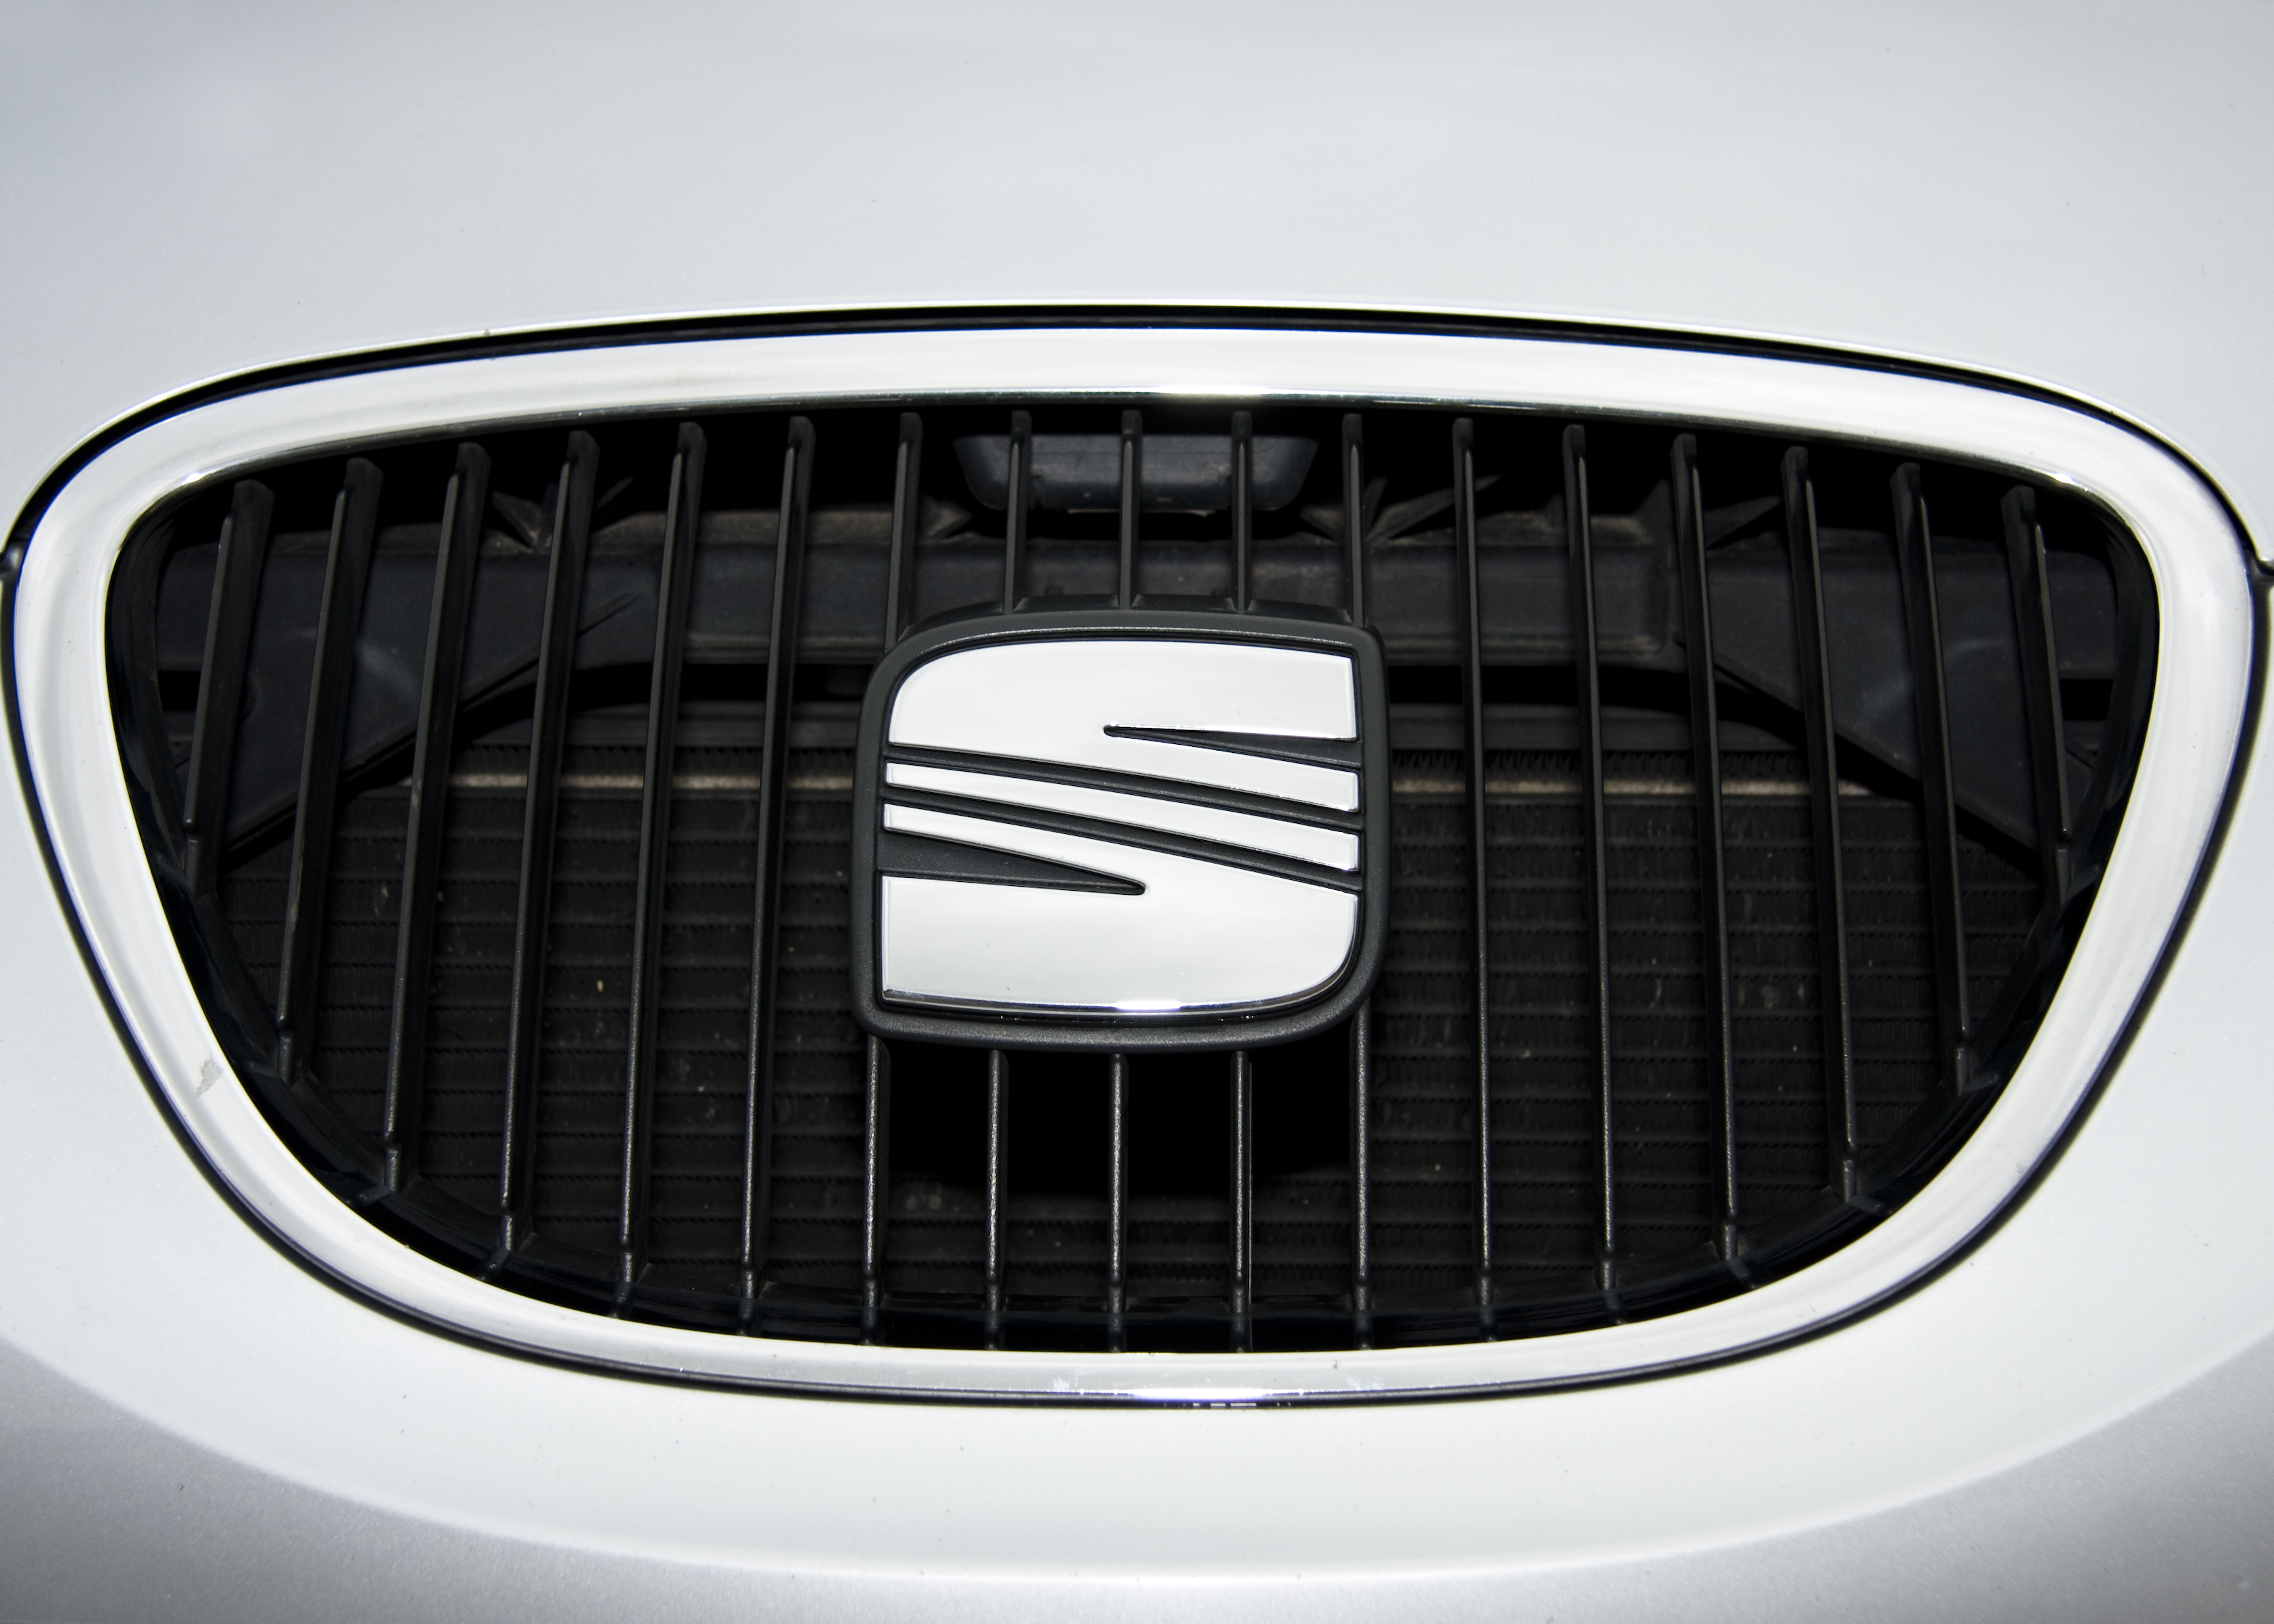 Silver SEAT Leon car badge